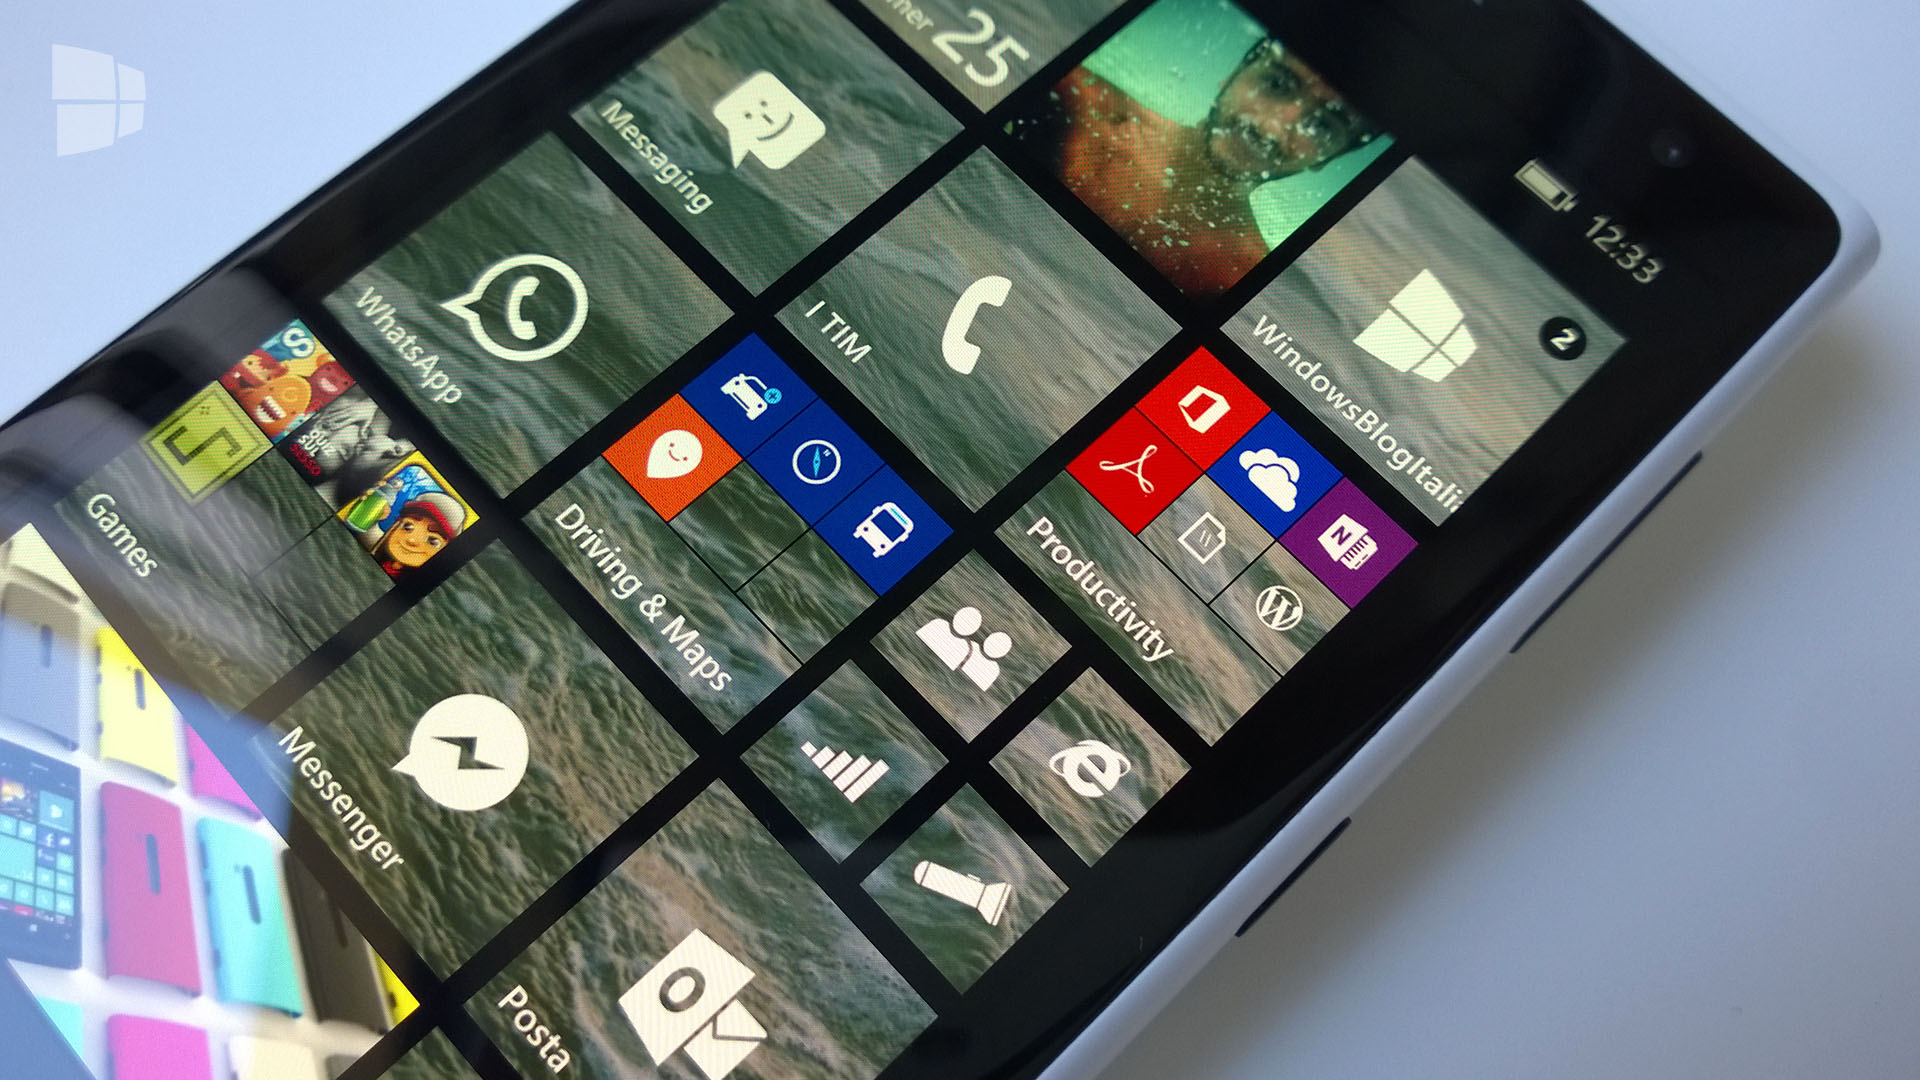 Windows-Phone-8.1-Update-1-Folders